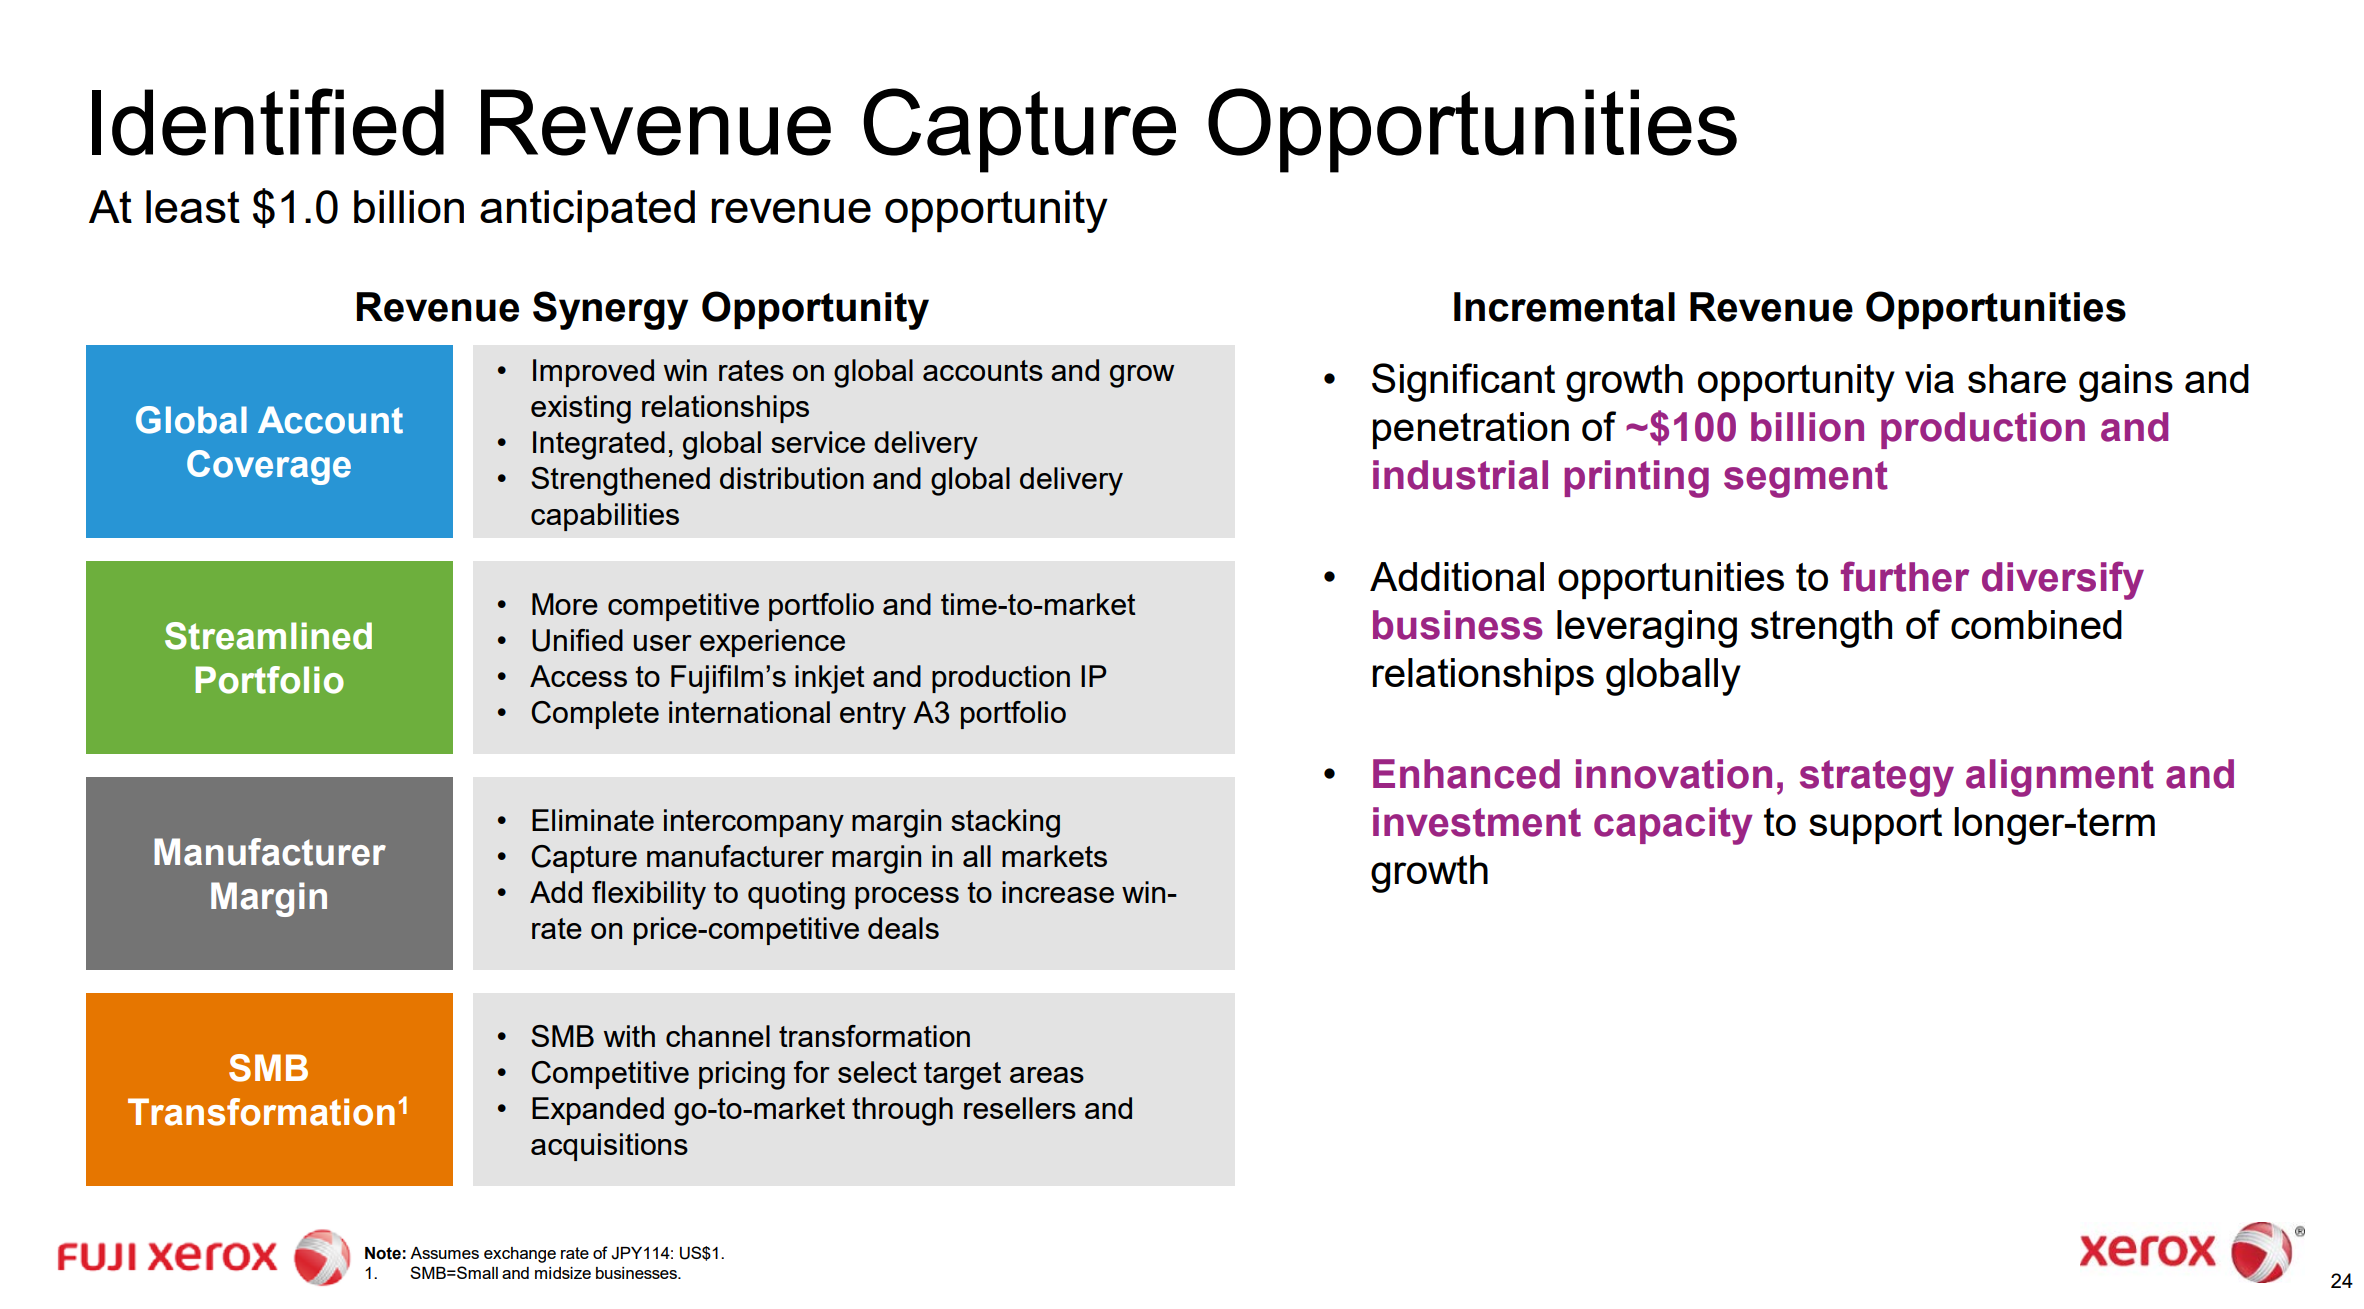 Identified Revenue Capture Opportunities